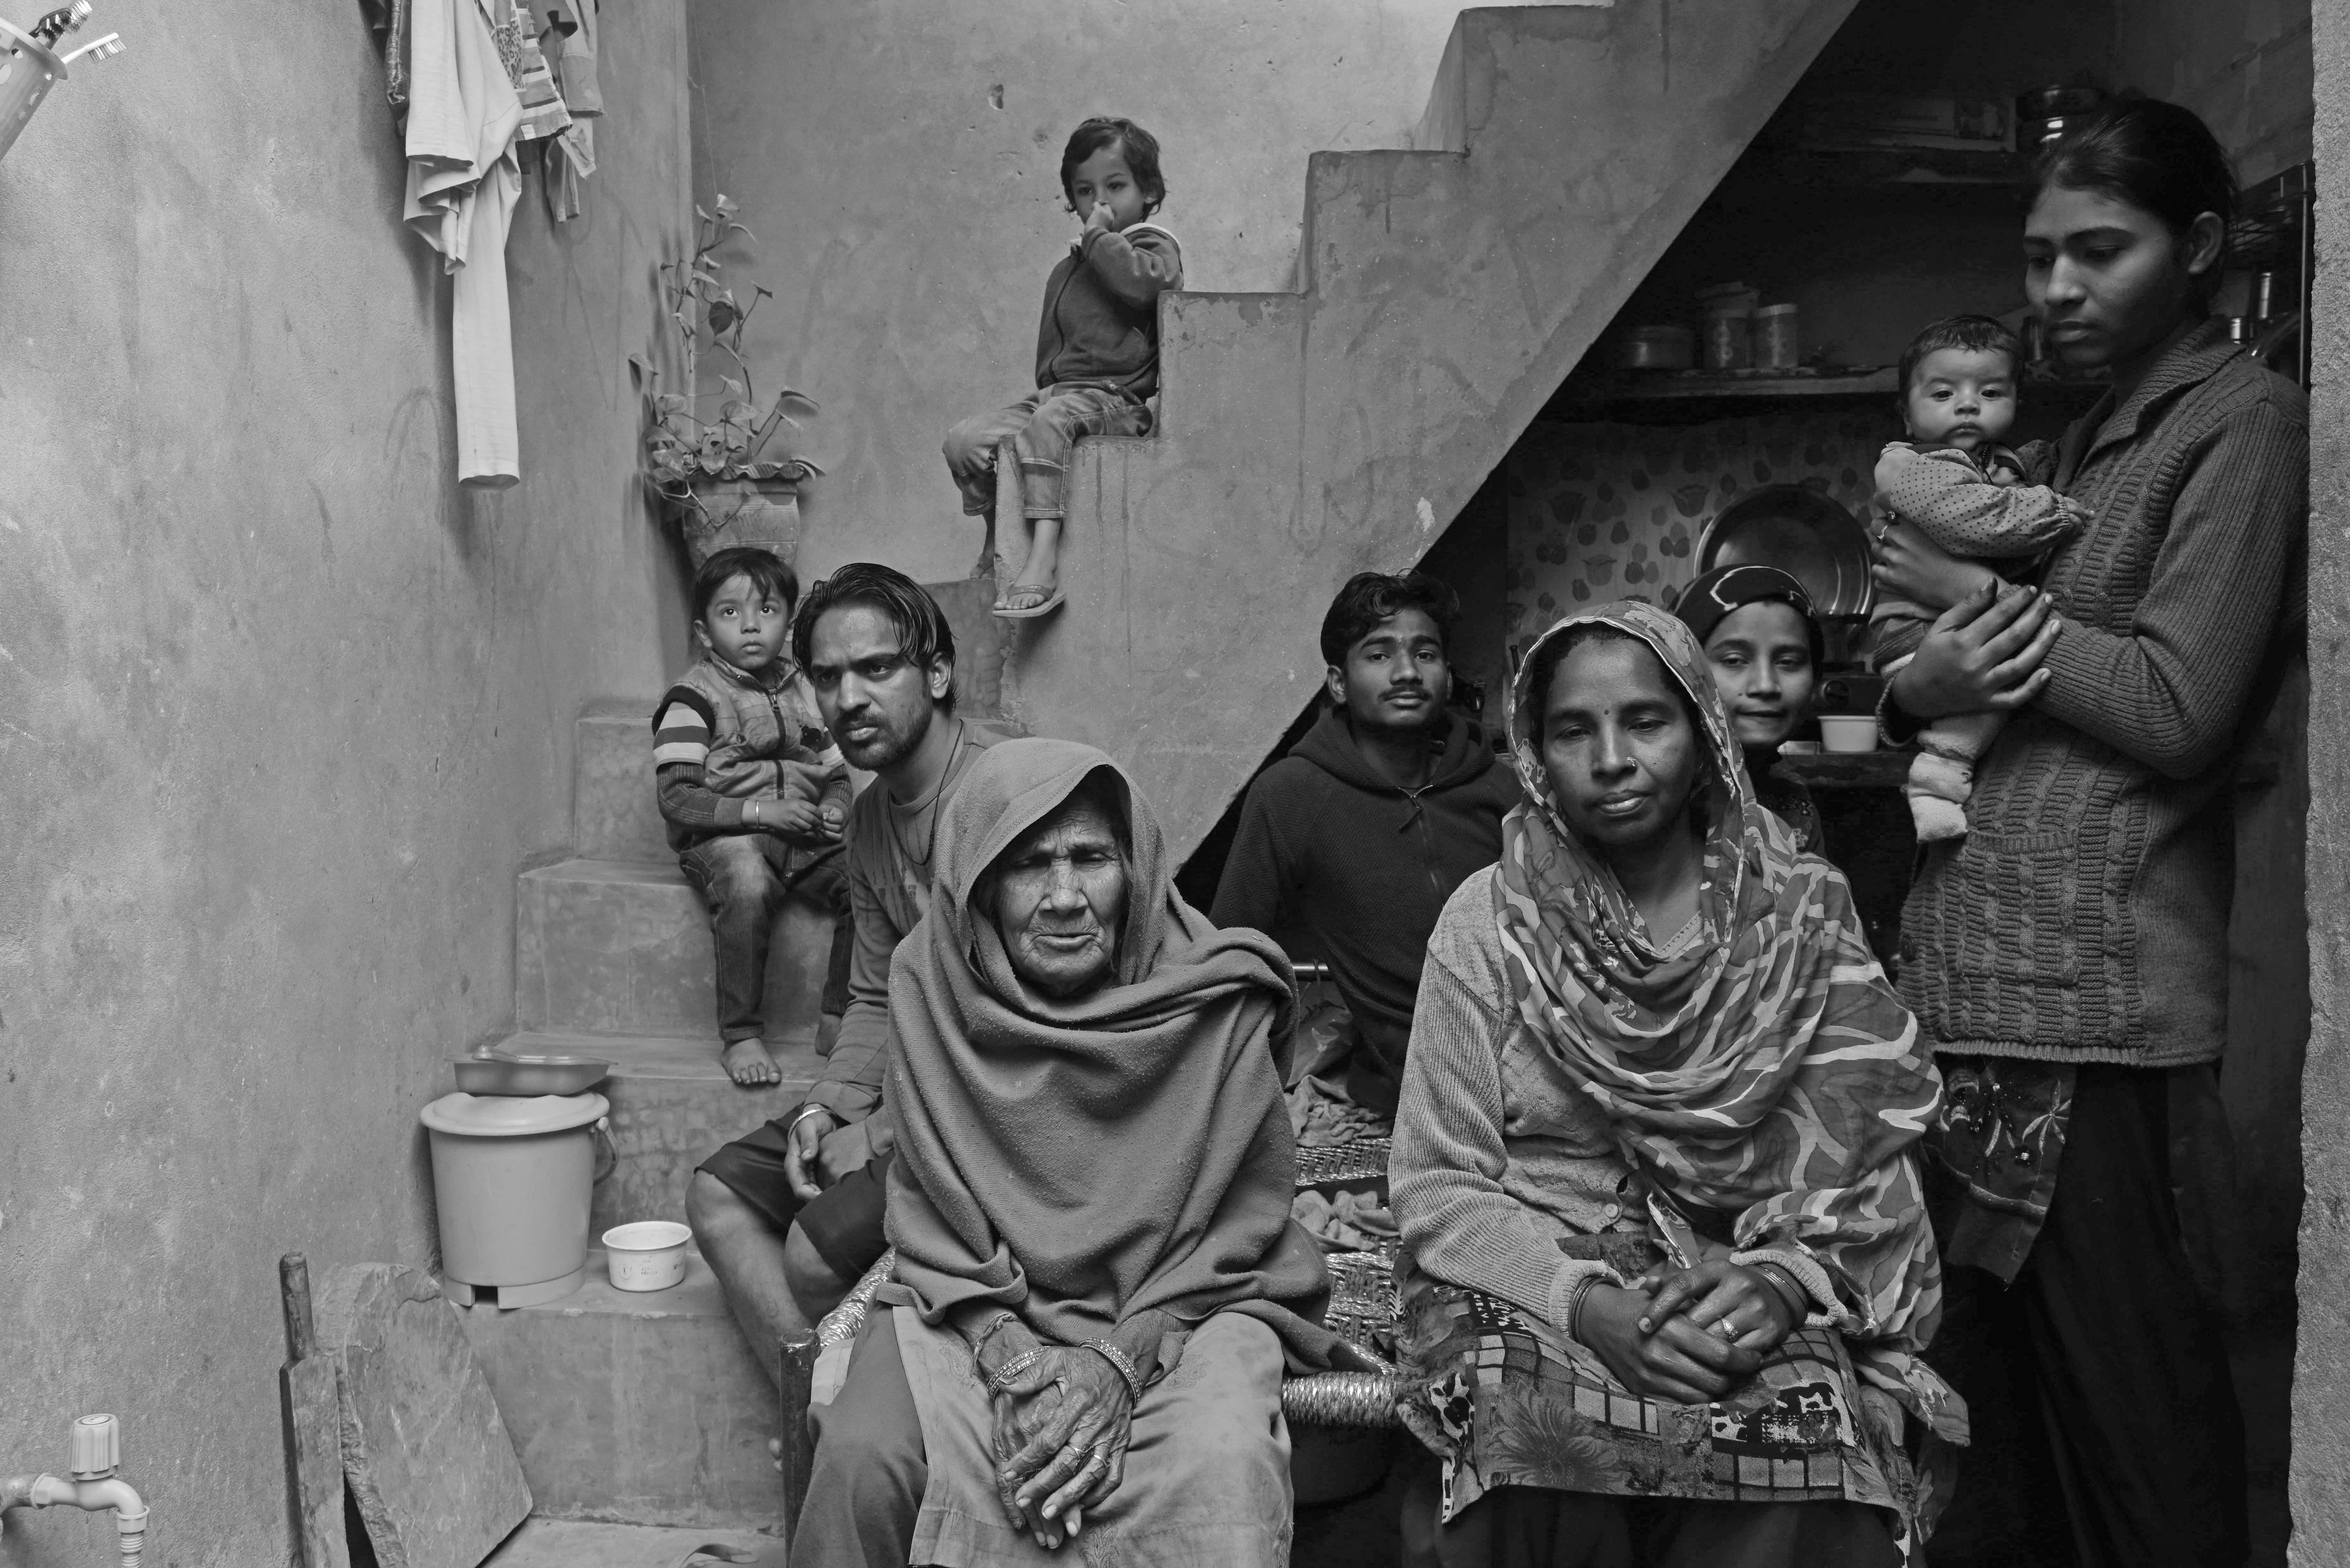 Mukeshdevi and her family at home. She and her husband Sukhraj must empty toilets by hand to support her mother-in-law, five children and two grandchildren.